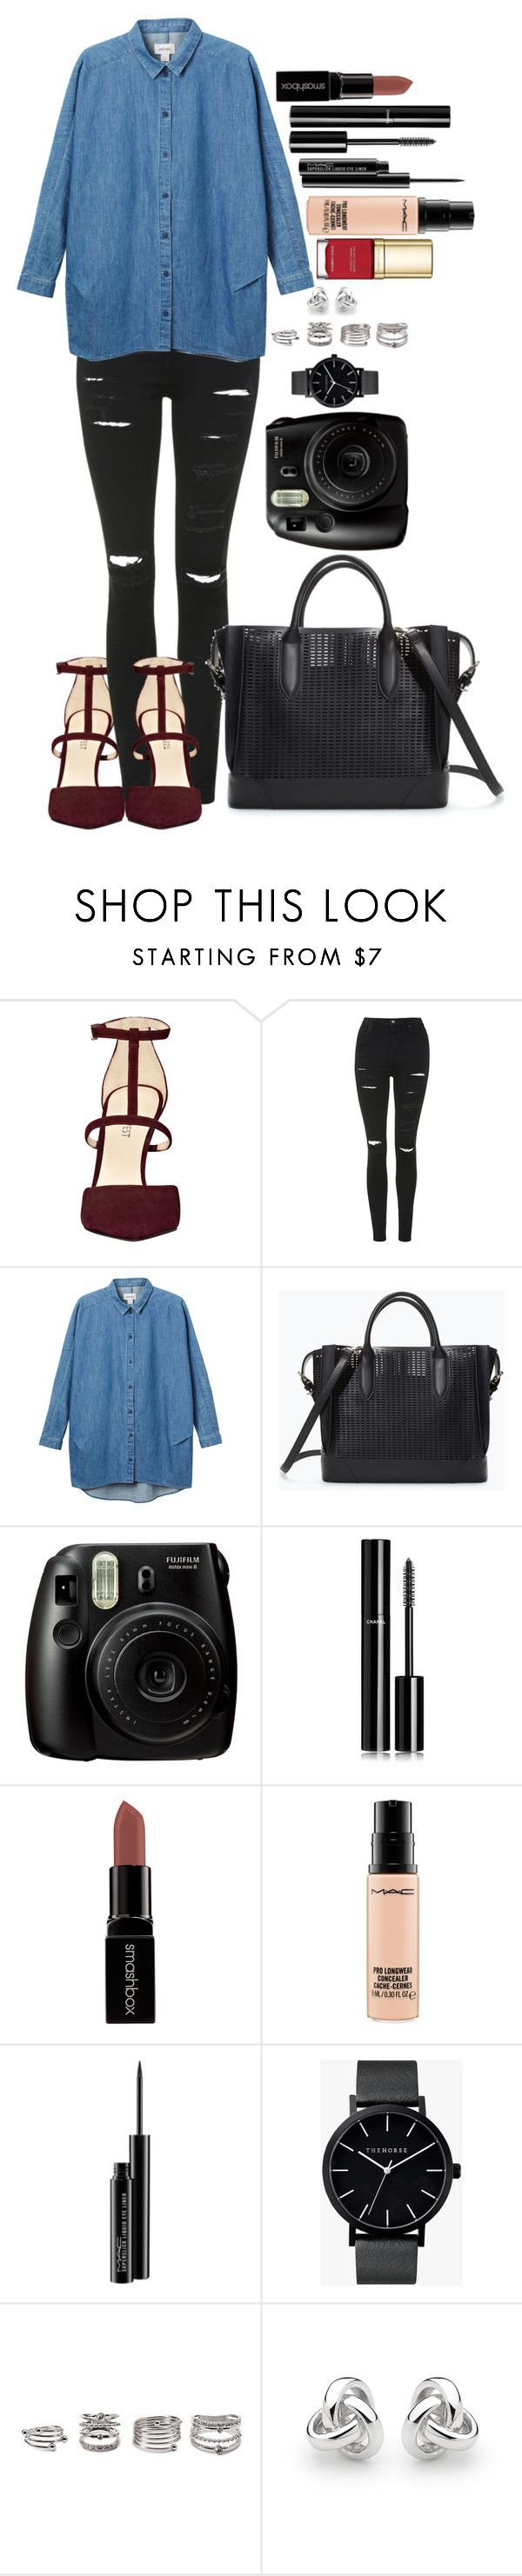 """Untitled #1395"" by fabianarveloc on Polyvore featuring Nine West, Topshop, Monki, Zara, Chanel, Smashbox, MAC Cosmetics, The Horse, Forever 21 and Georgini"